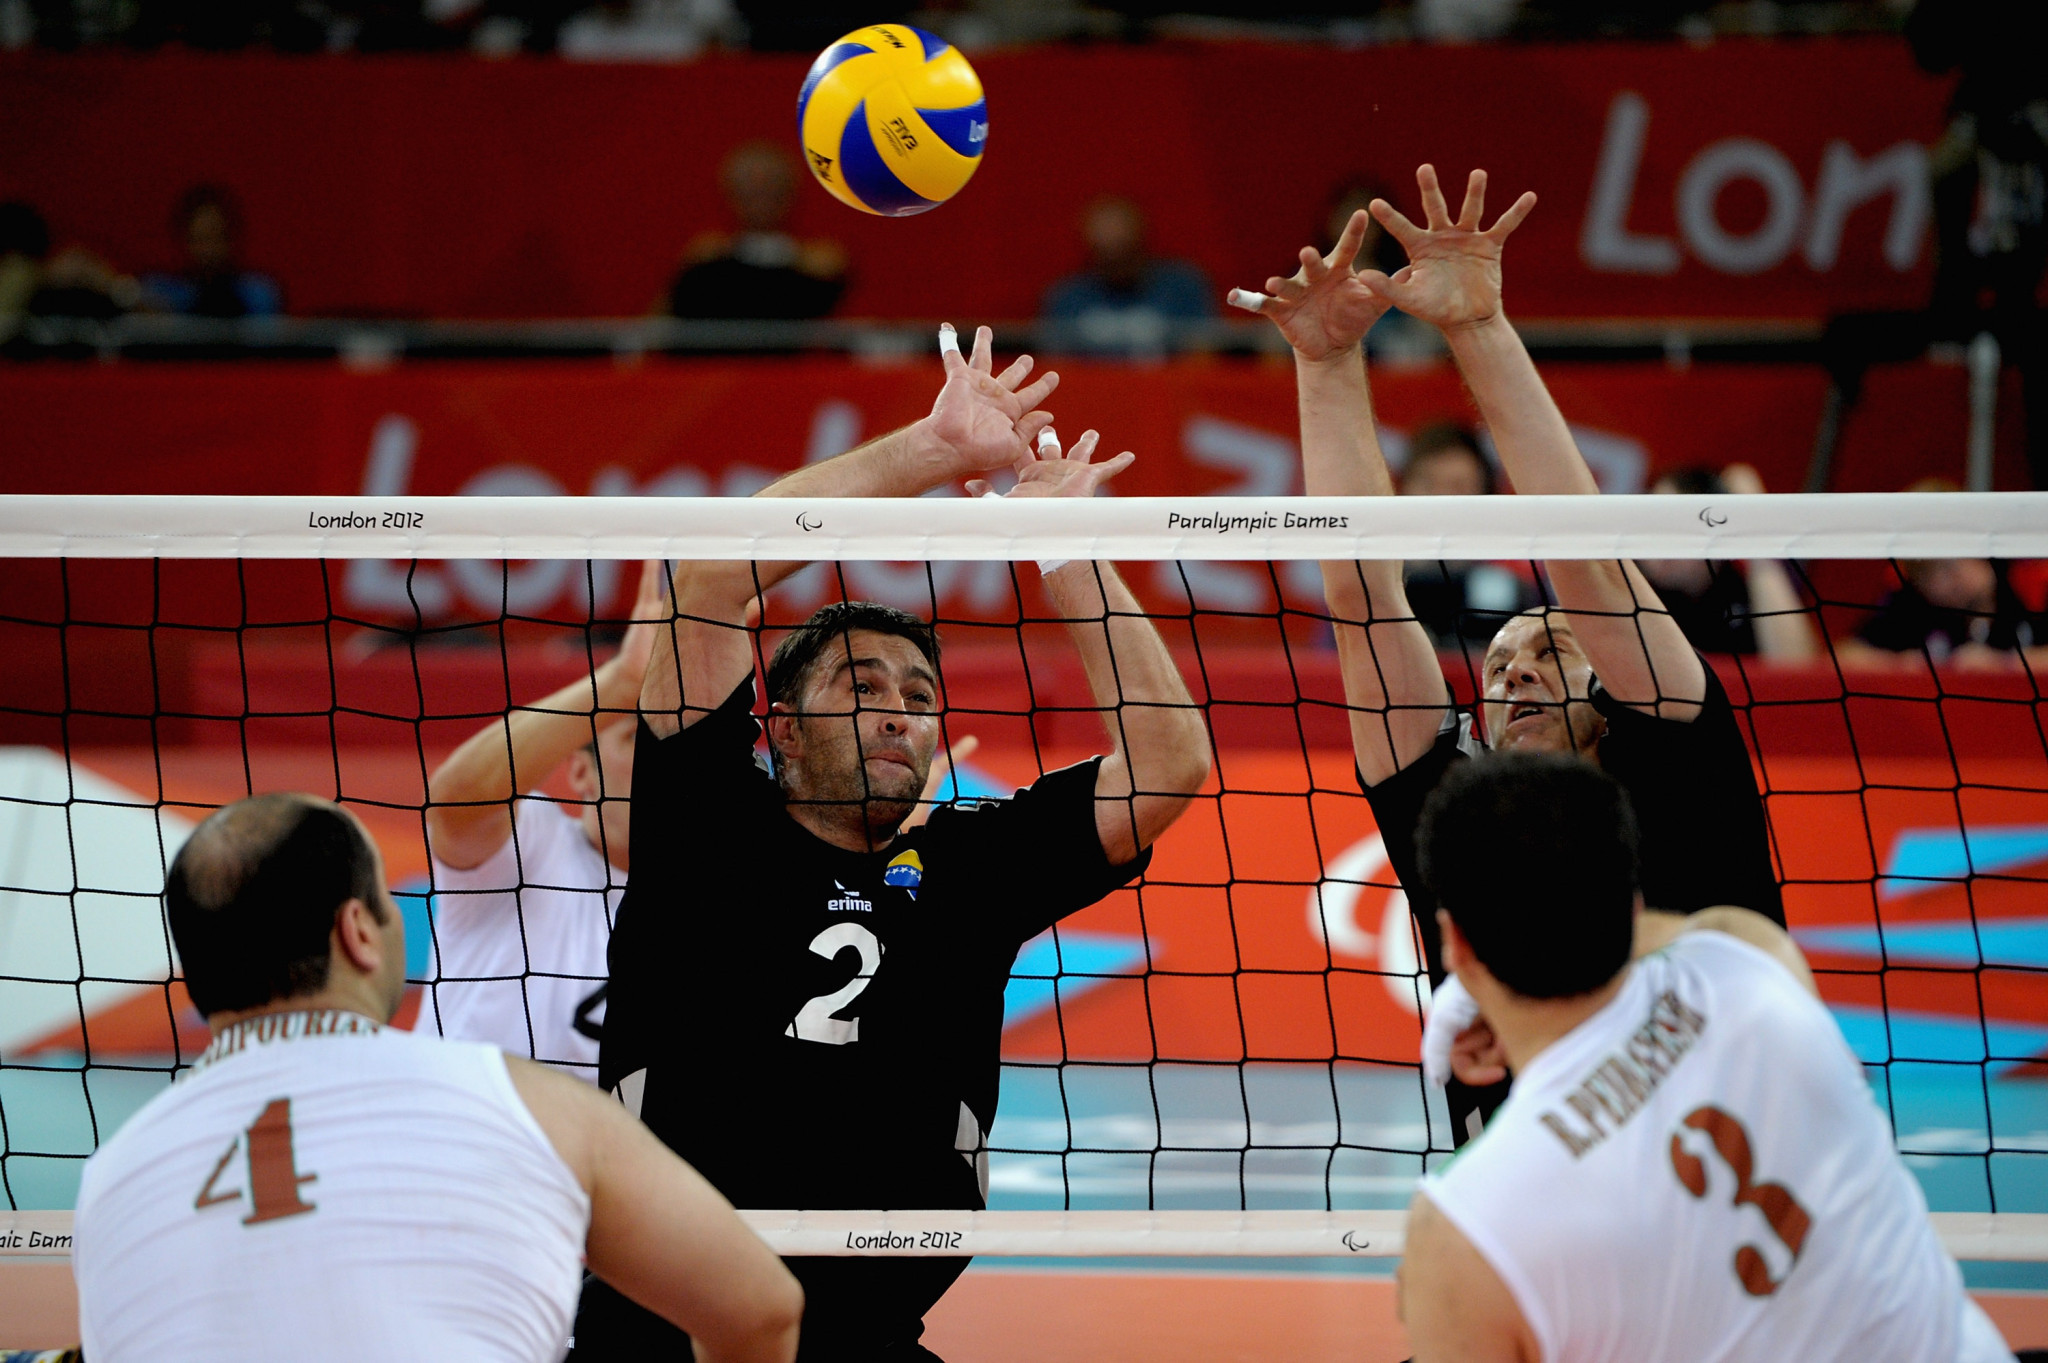 Jonathan Moore helped organise the London 2012 sitting volleyball tournament ©Getty Images